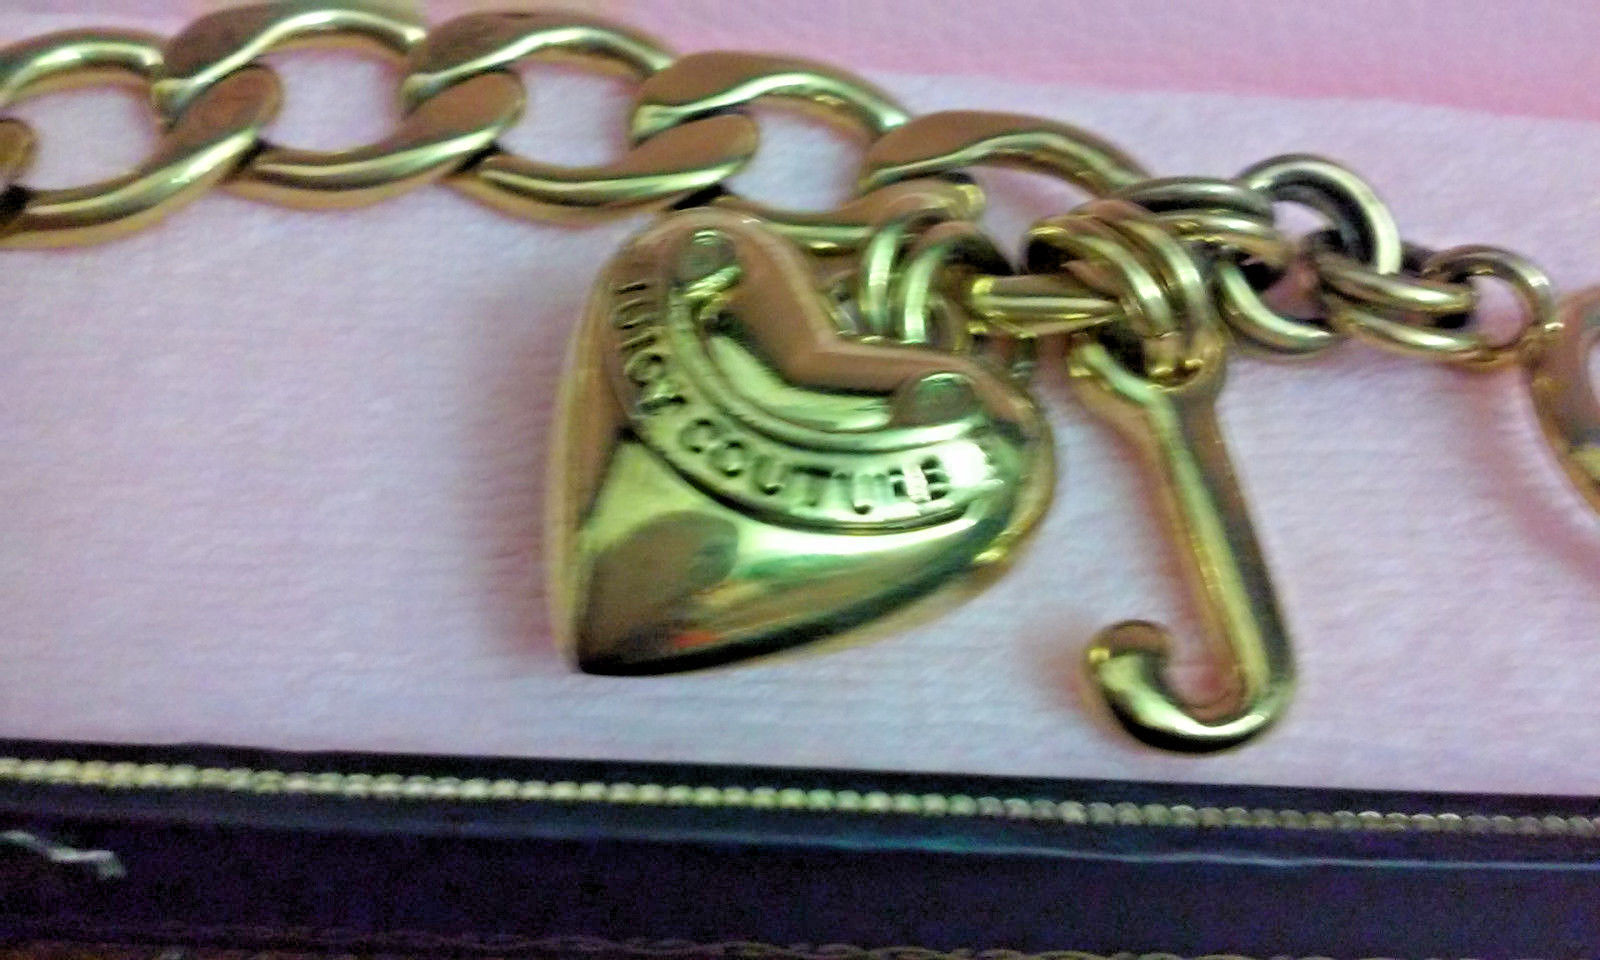 Juicy Couture Starter Charm Toggle Bracelet & Heart & J Charms Gold Tone in Box